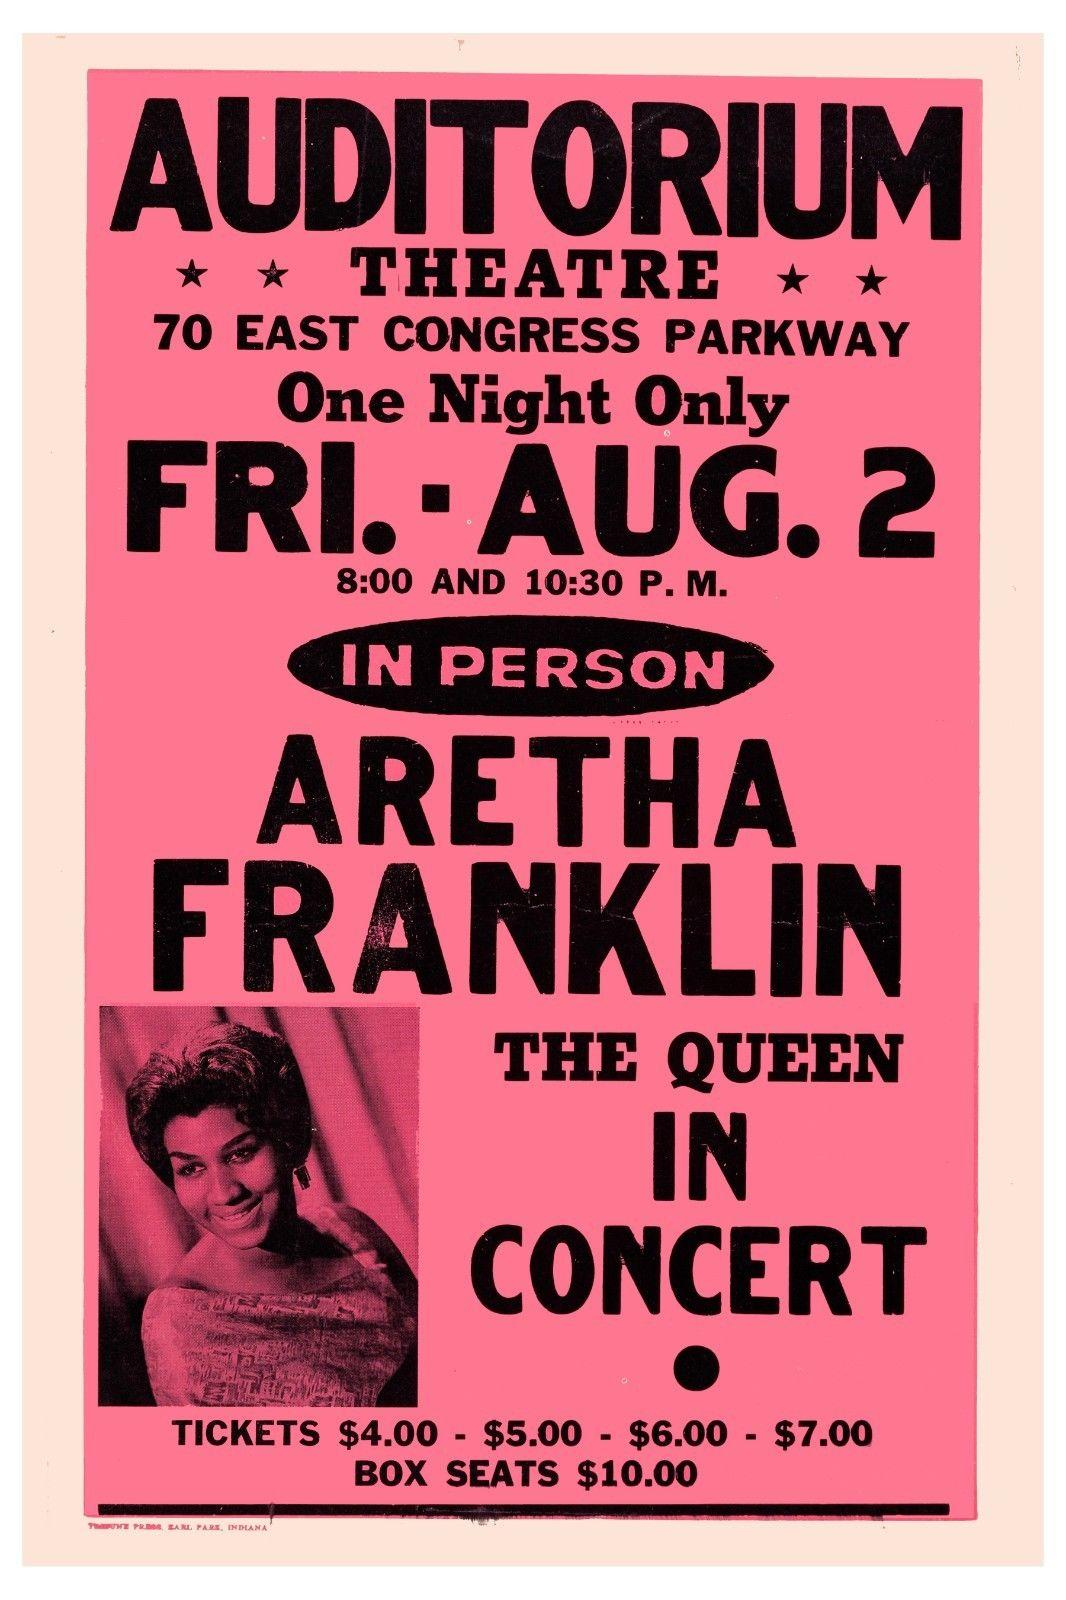 Queen of Soul: Aretha Franklin at Chicago Auditorium Theatre Concert Poster 1974 Art Silk Print Poster 24x36inch(60x90cm)